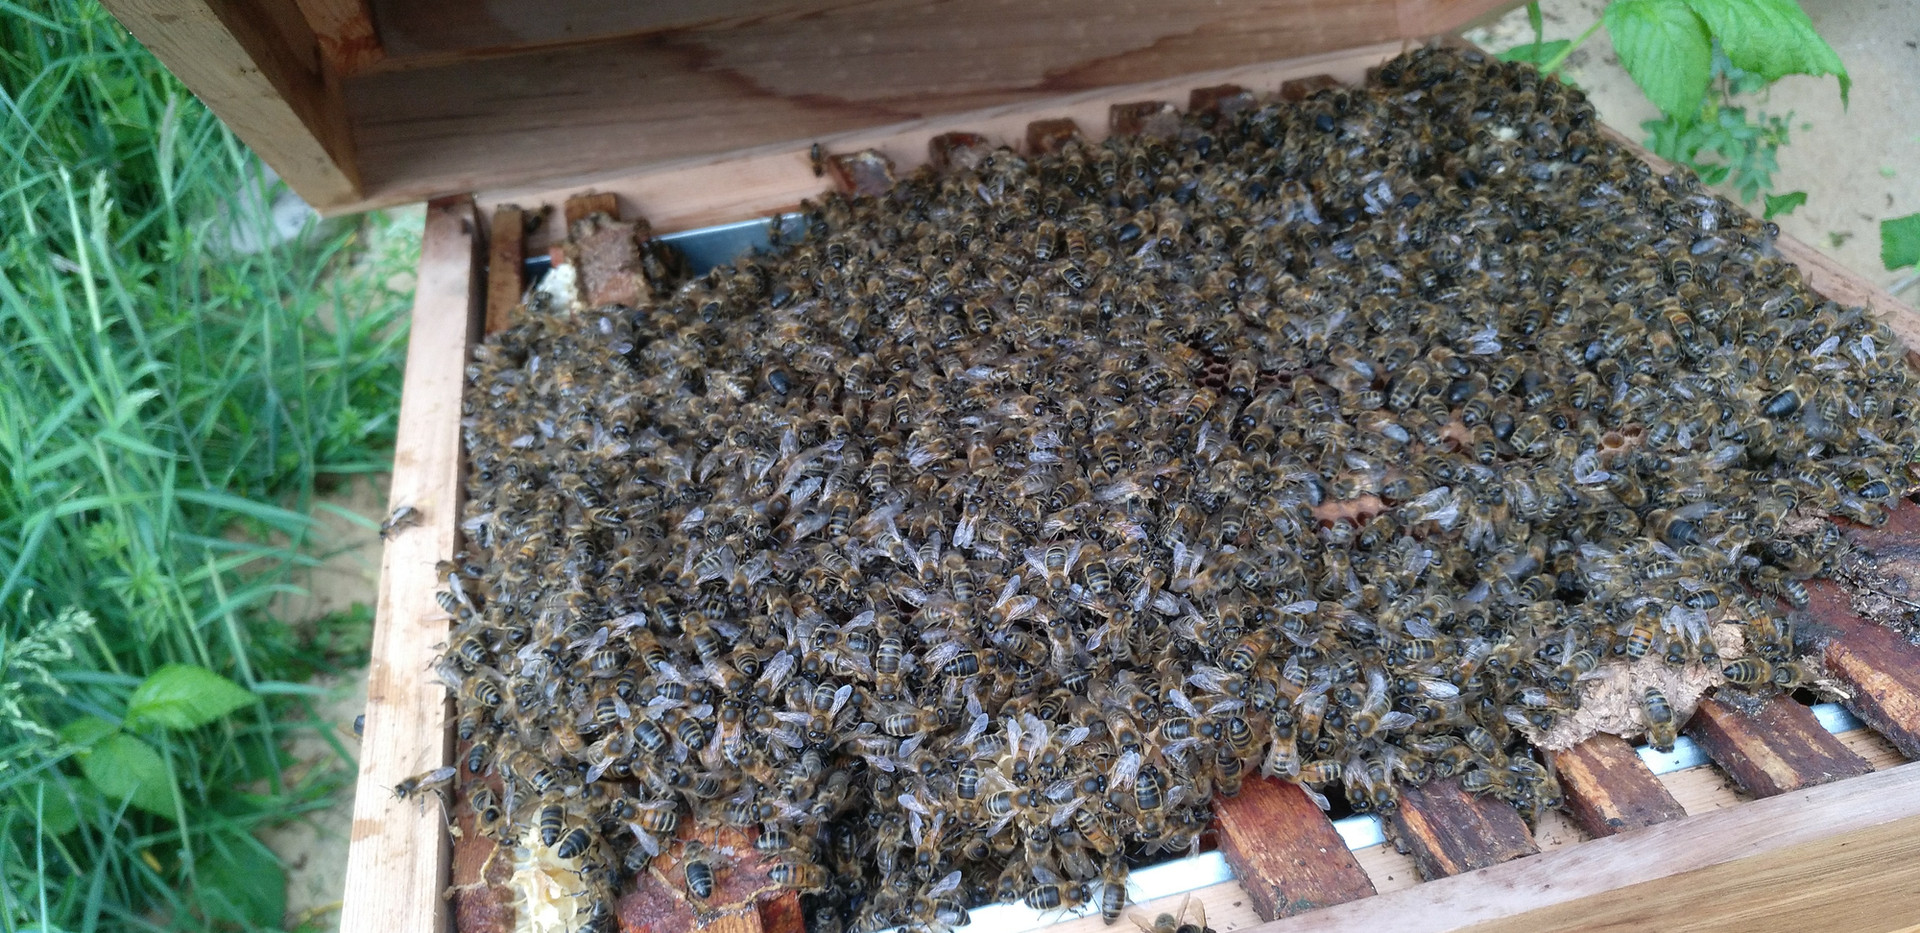 Our essential pollinating bees